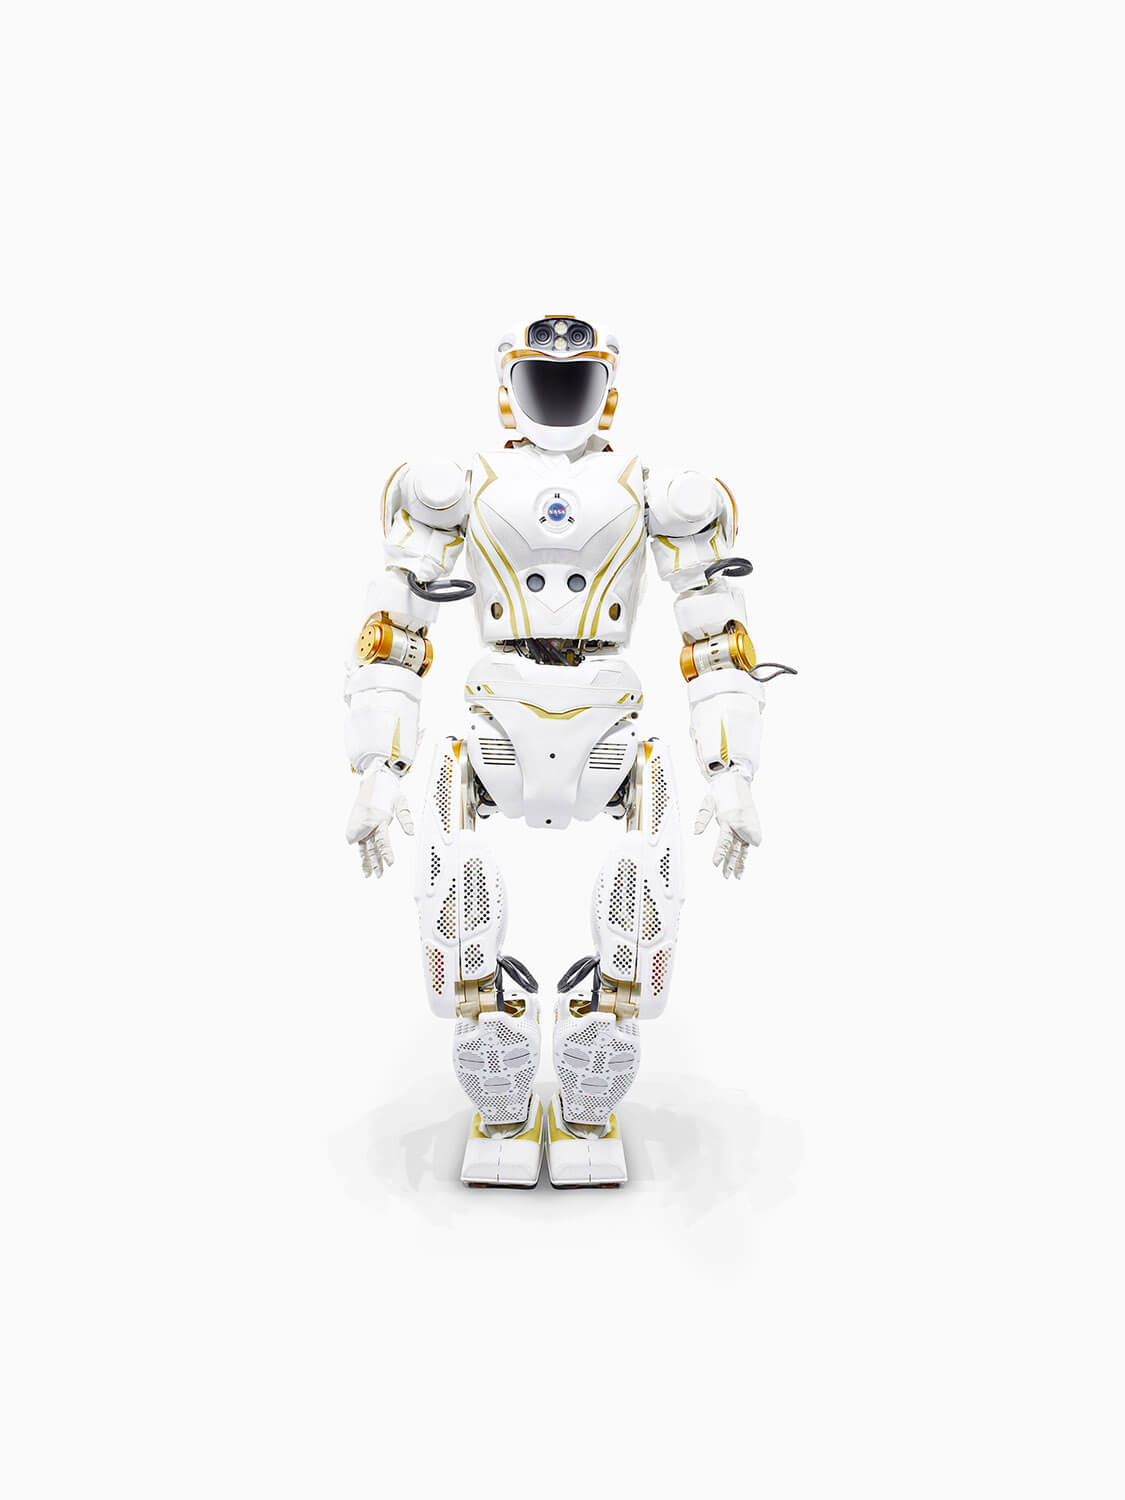 ROBONAUT VALKYRIE R5 - JOHNSON SPACE CENTRE